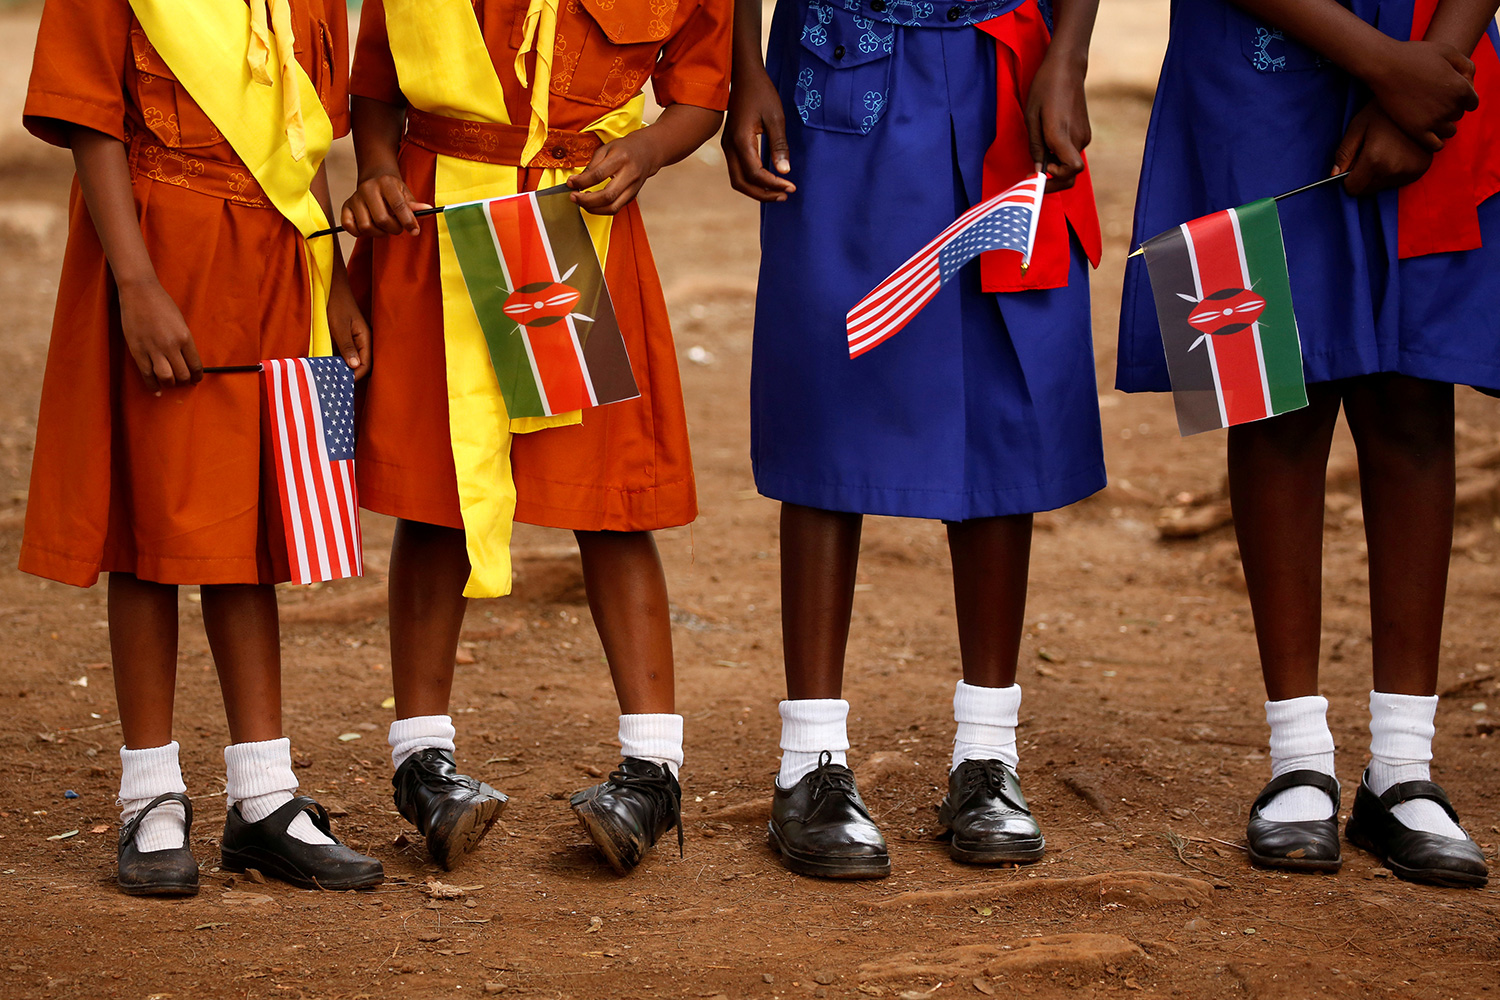 Young girls holding U.S. and Kenyan flags wait to greet U.S. Ambassador Robert Godec at a President's Emergency Plan for AIDS Relief (PEPFAR) project for girls' empowerment in Nairobi on Mar 10, 2018. The photo shows four girls from the stomach down holding flags. REUTERS/Jonathan Ernst